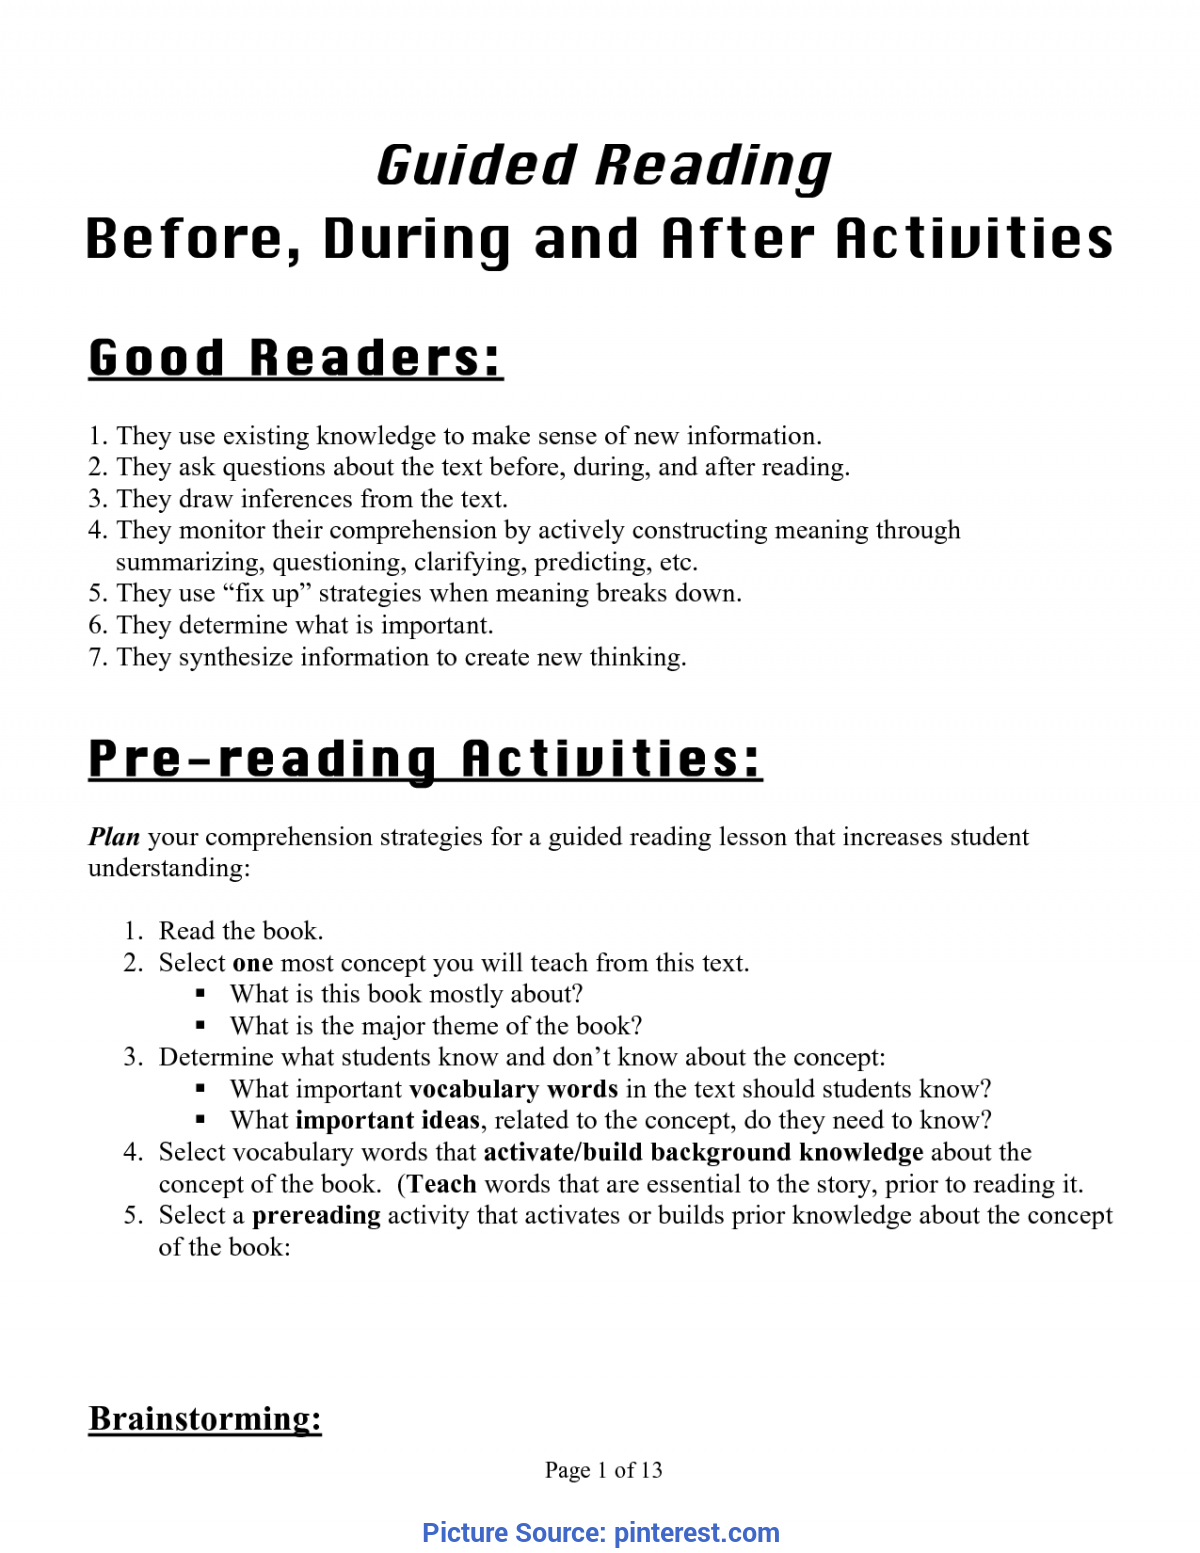 Good Reading Lesson Plan On Prediction Use Guided Reading Strategies To Teach Making Predicitions. Thi